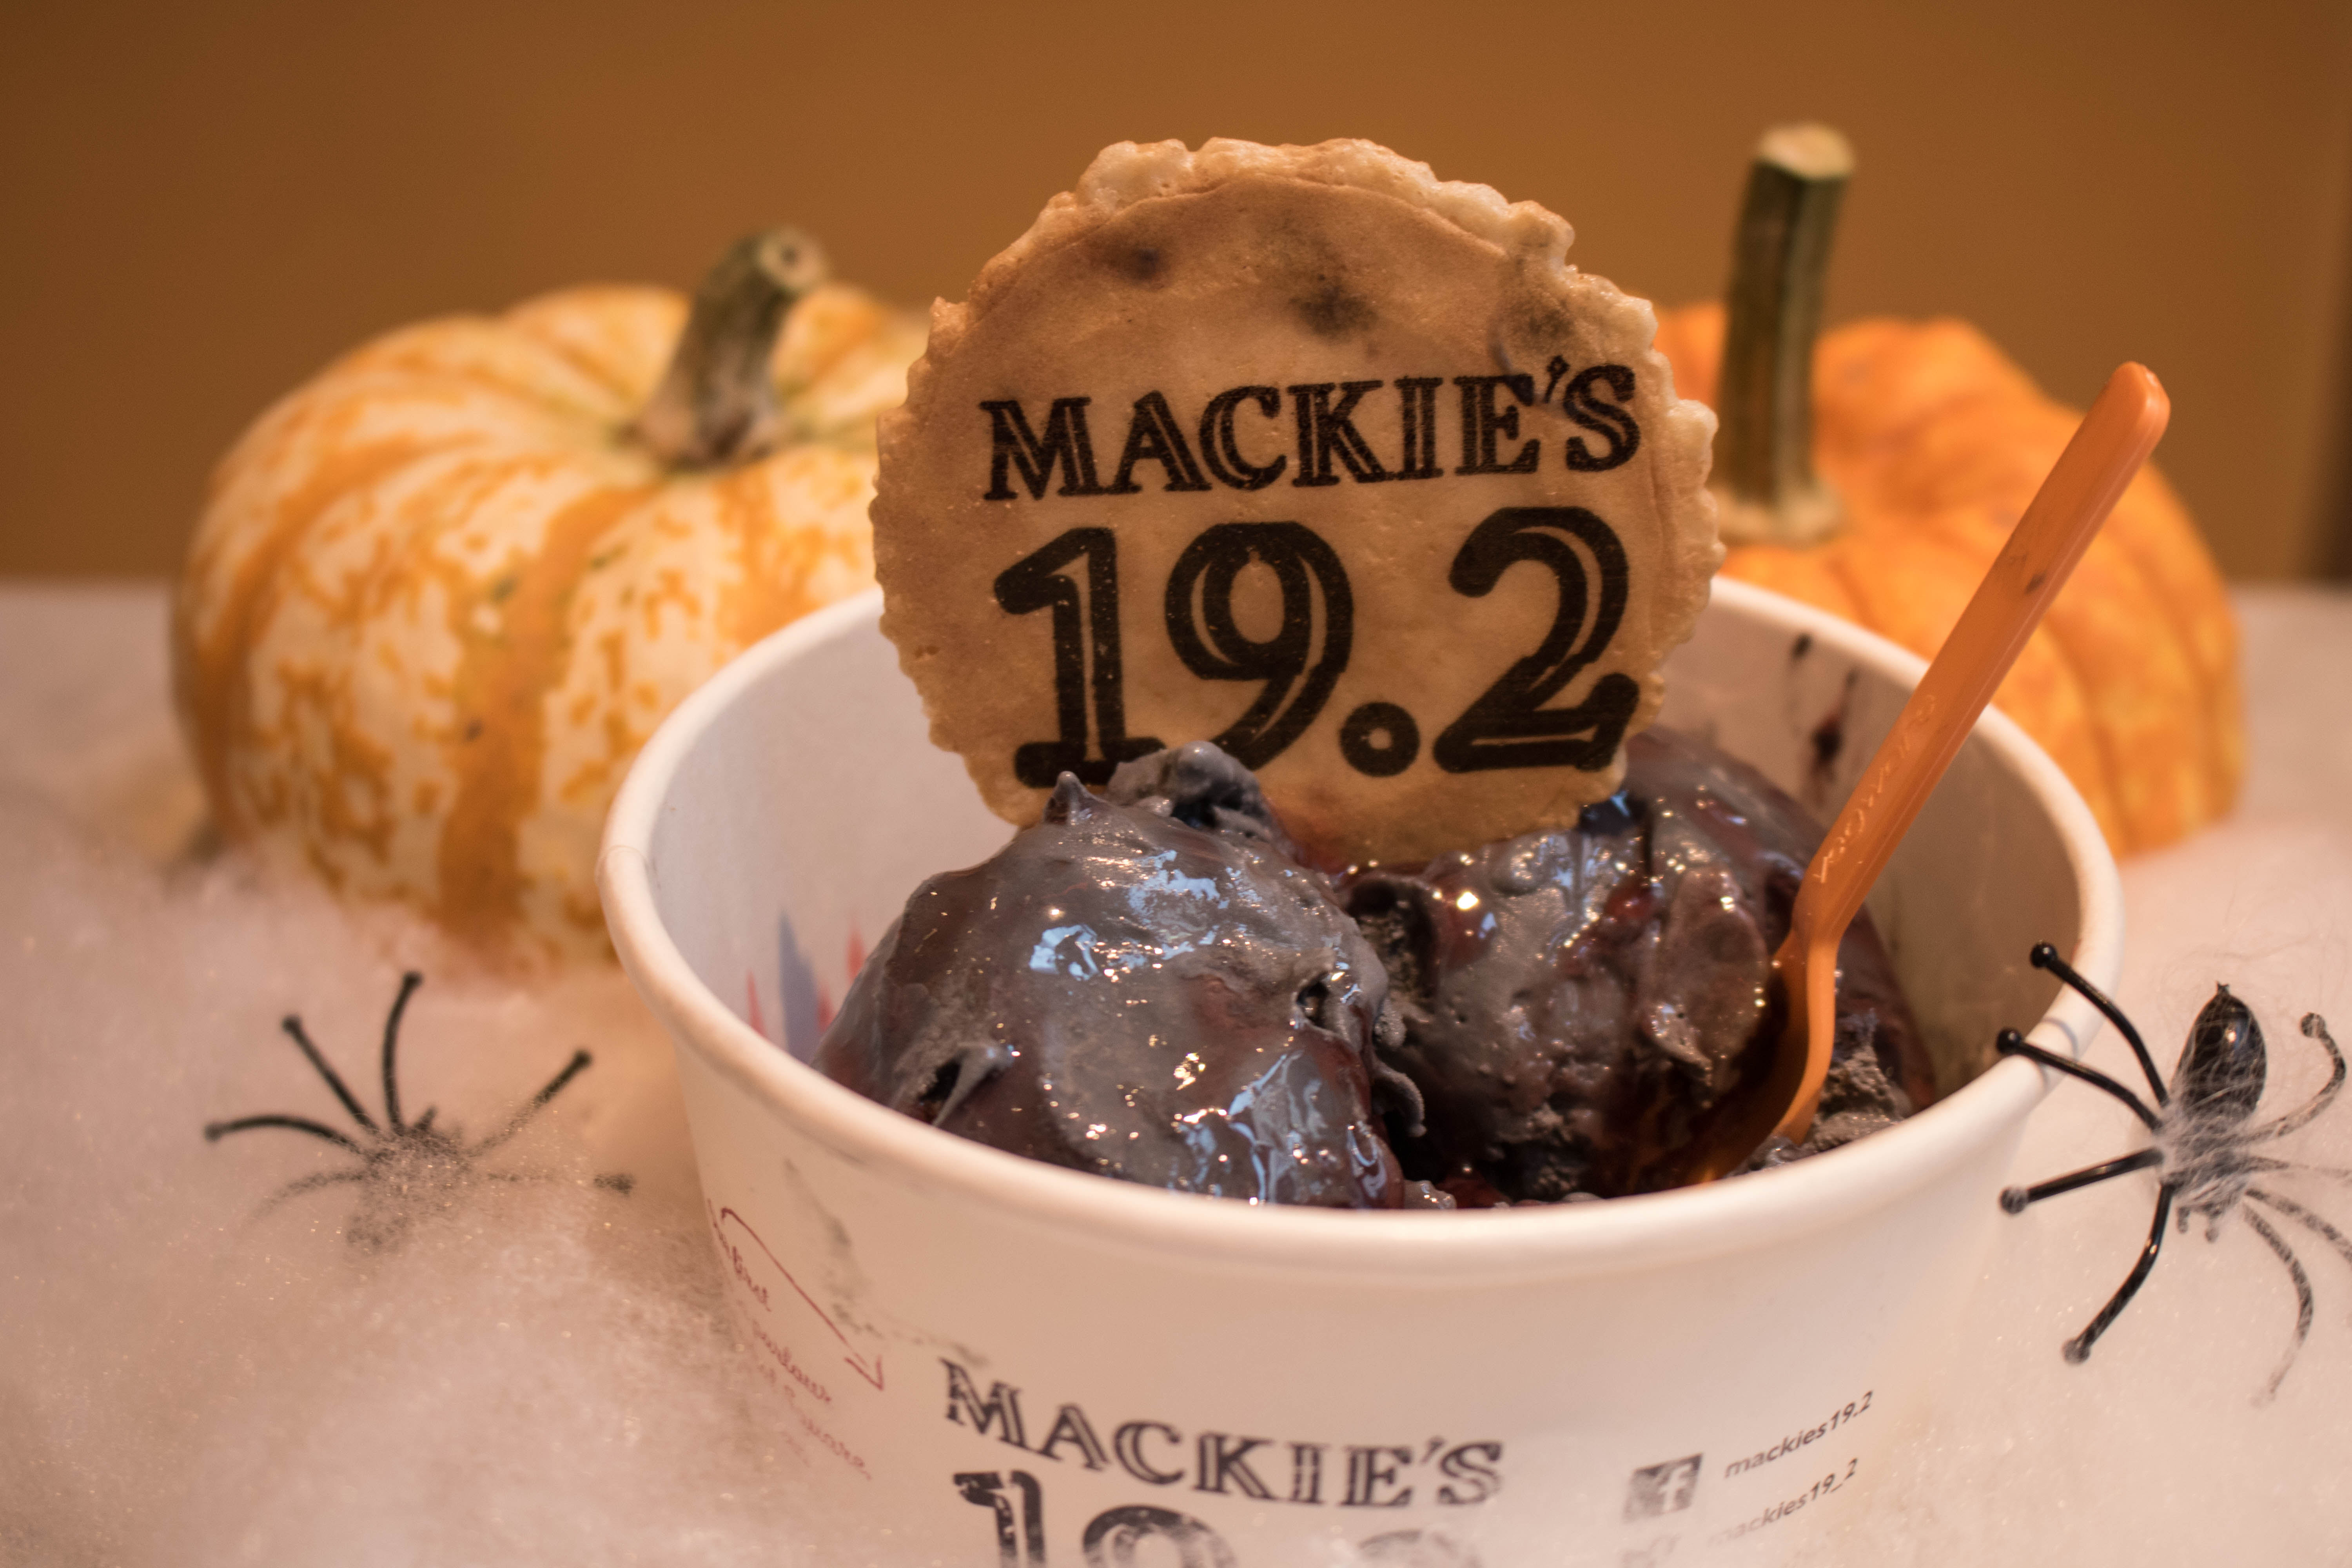 Food and Drink PR photography of blackcurrant and liquorice ice from Mackie's 19.2